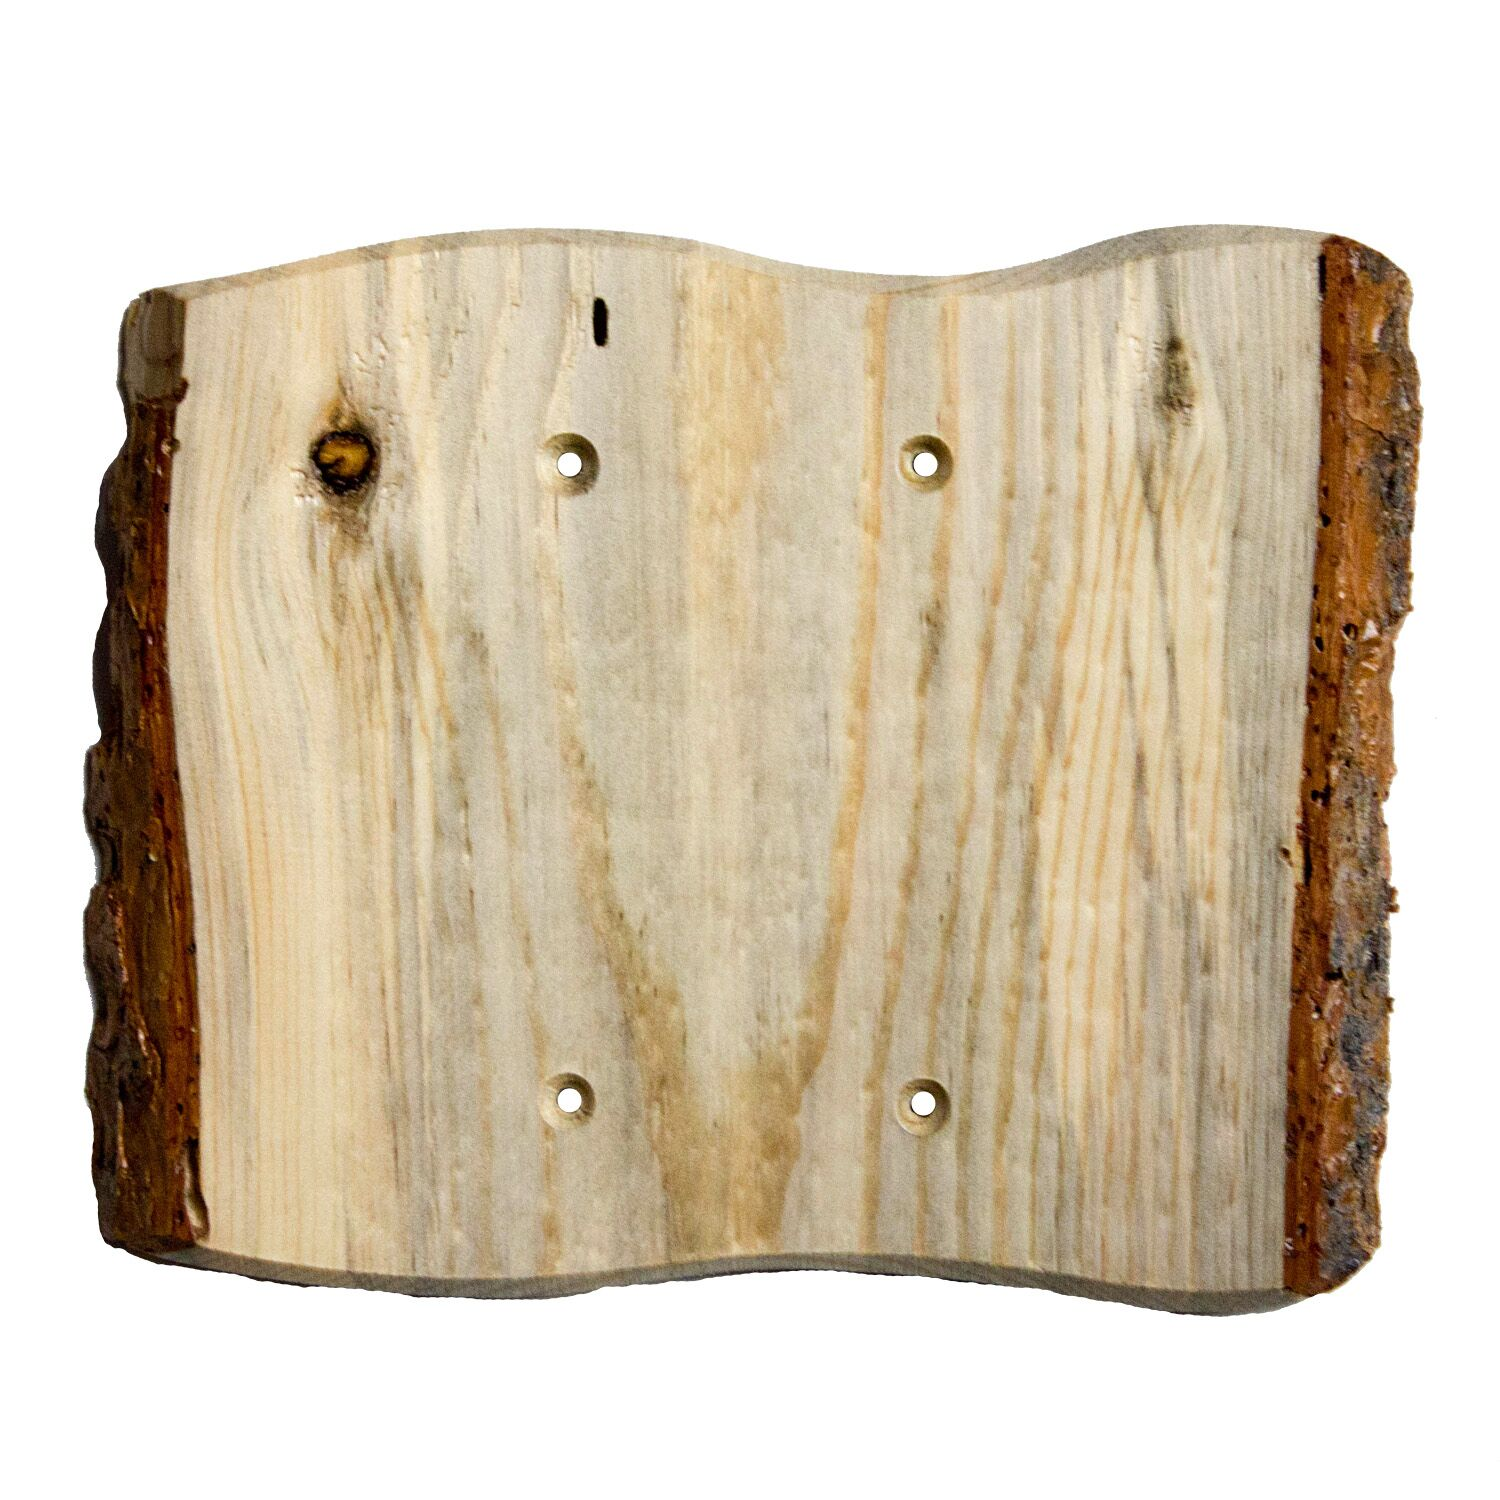 Rustic - 2 Blank Finished Finish: Blued Pine